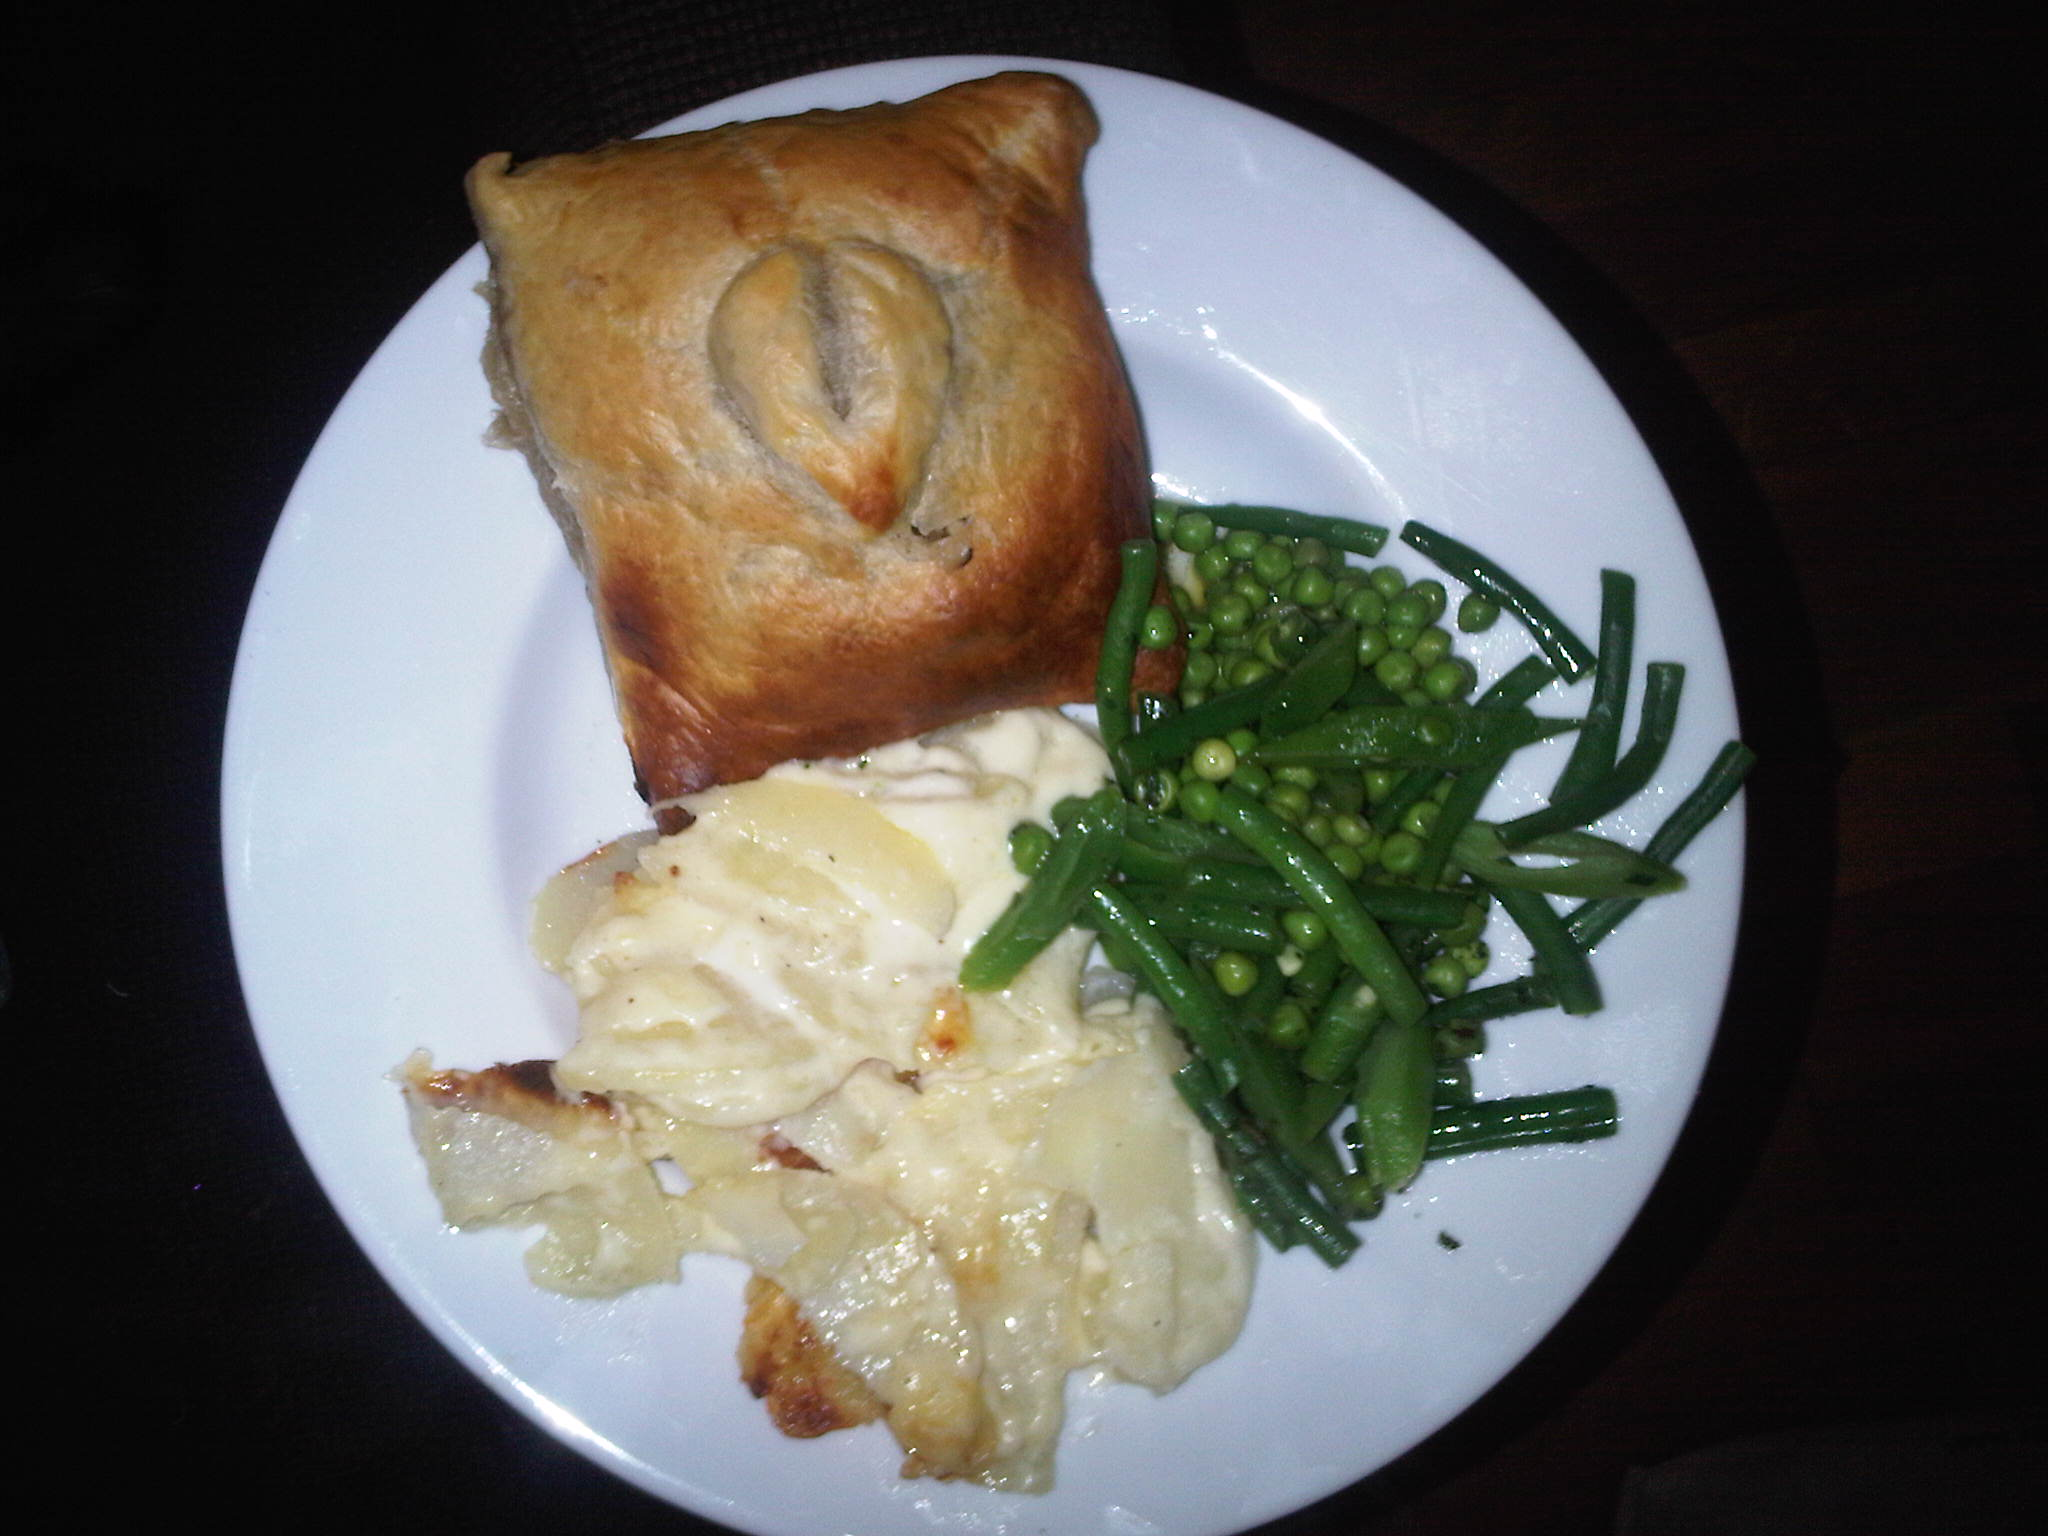 at home in london :: Beef wellington with dauphinoise potatoes and green beans with peas..really good but a bit too heavy!